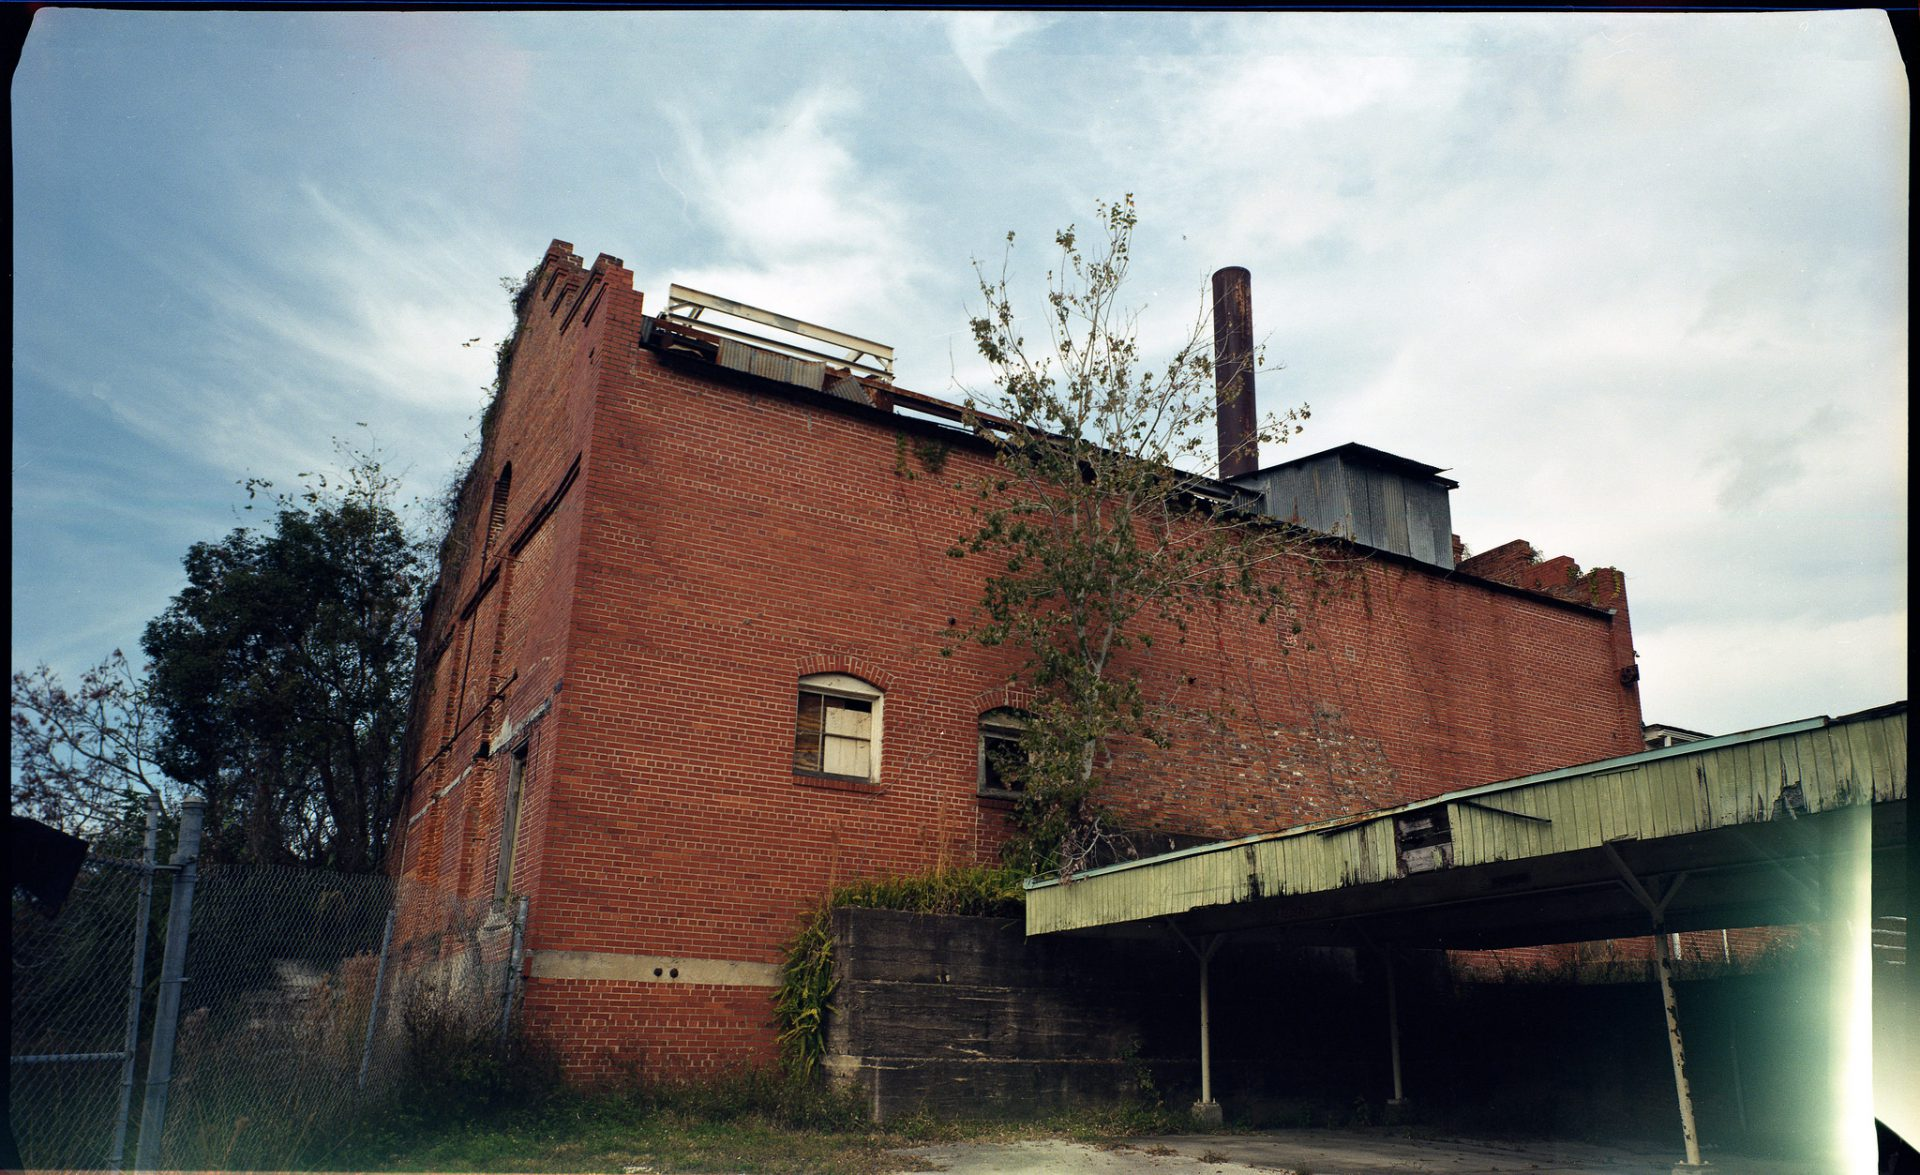 a color picture of a brick abandoned building